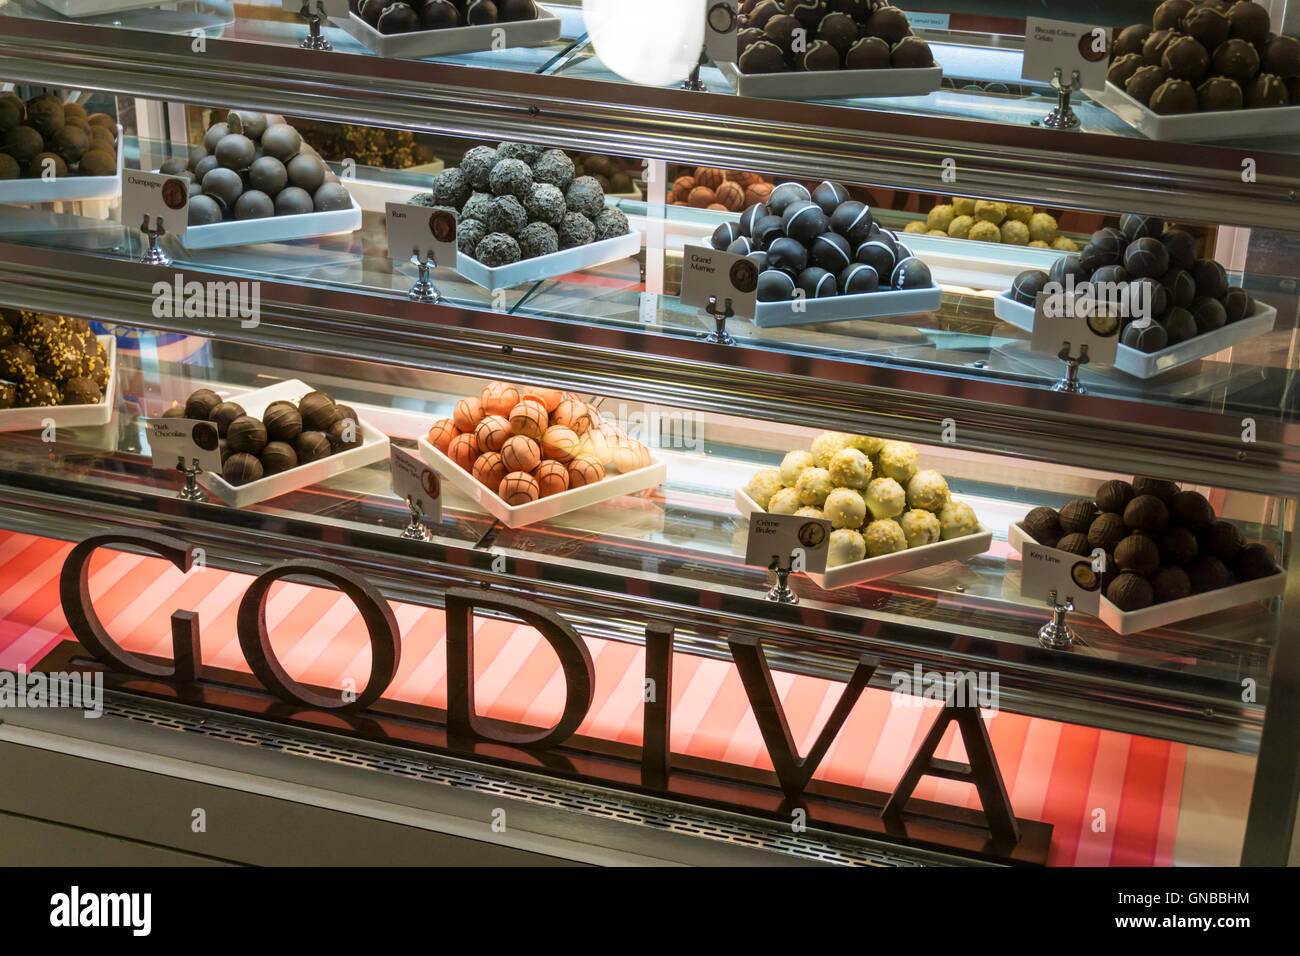 Display in Godiva chocolate shop covered with dust from World ...